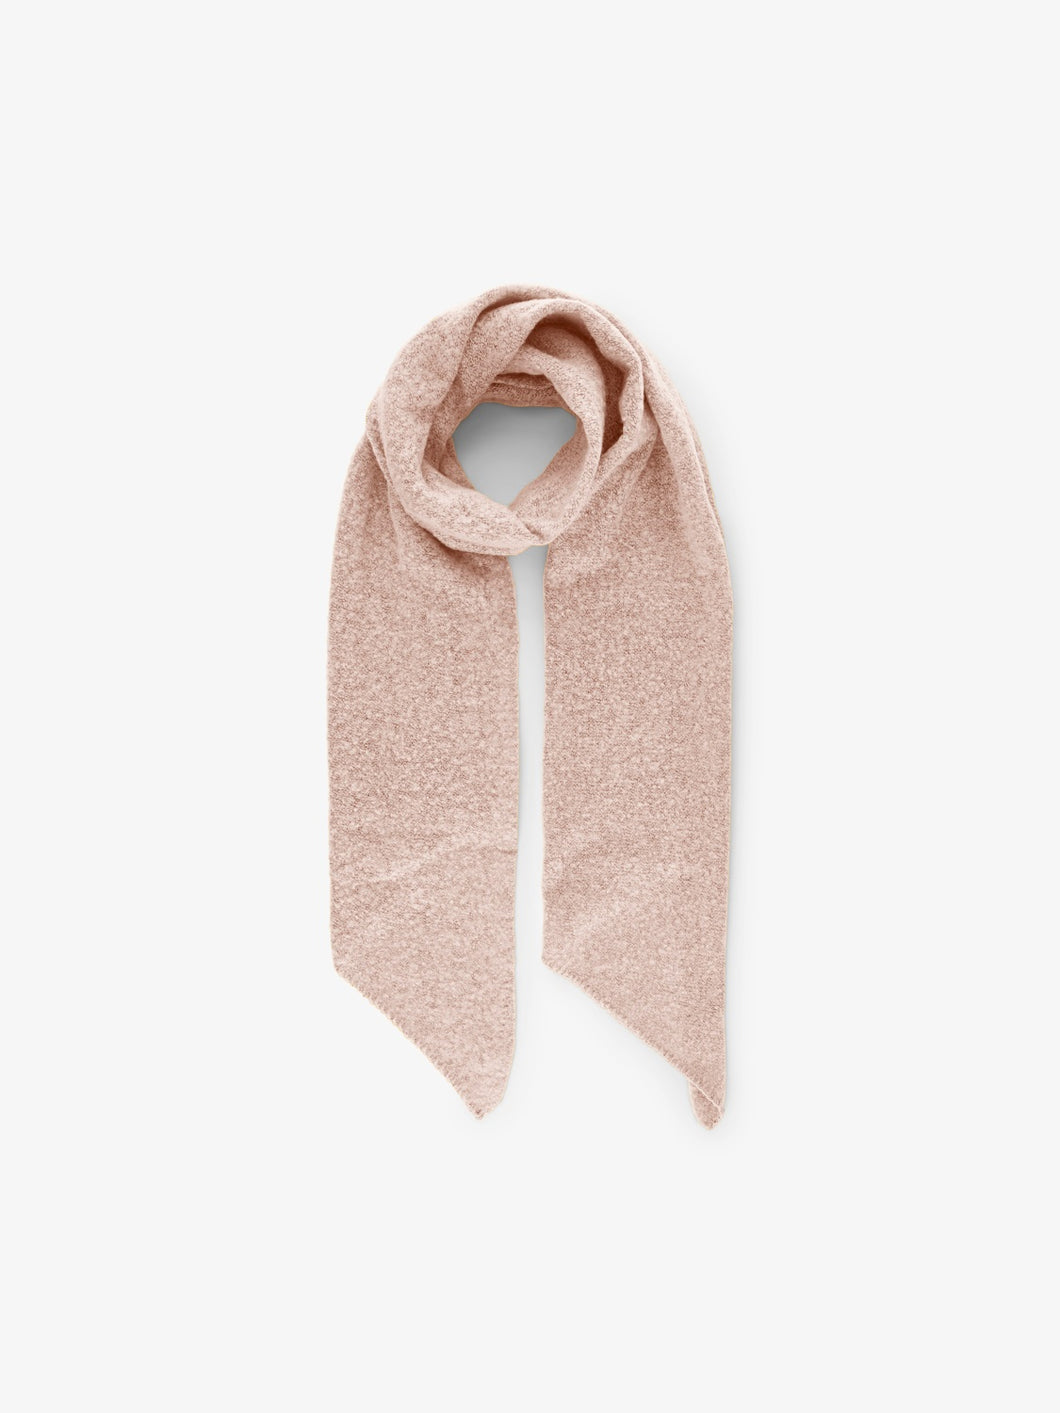 Pyron Long Scarf in Cameo Rose